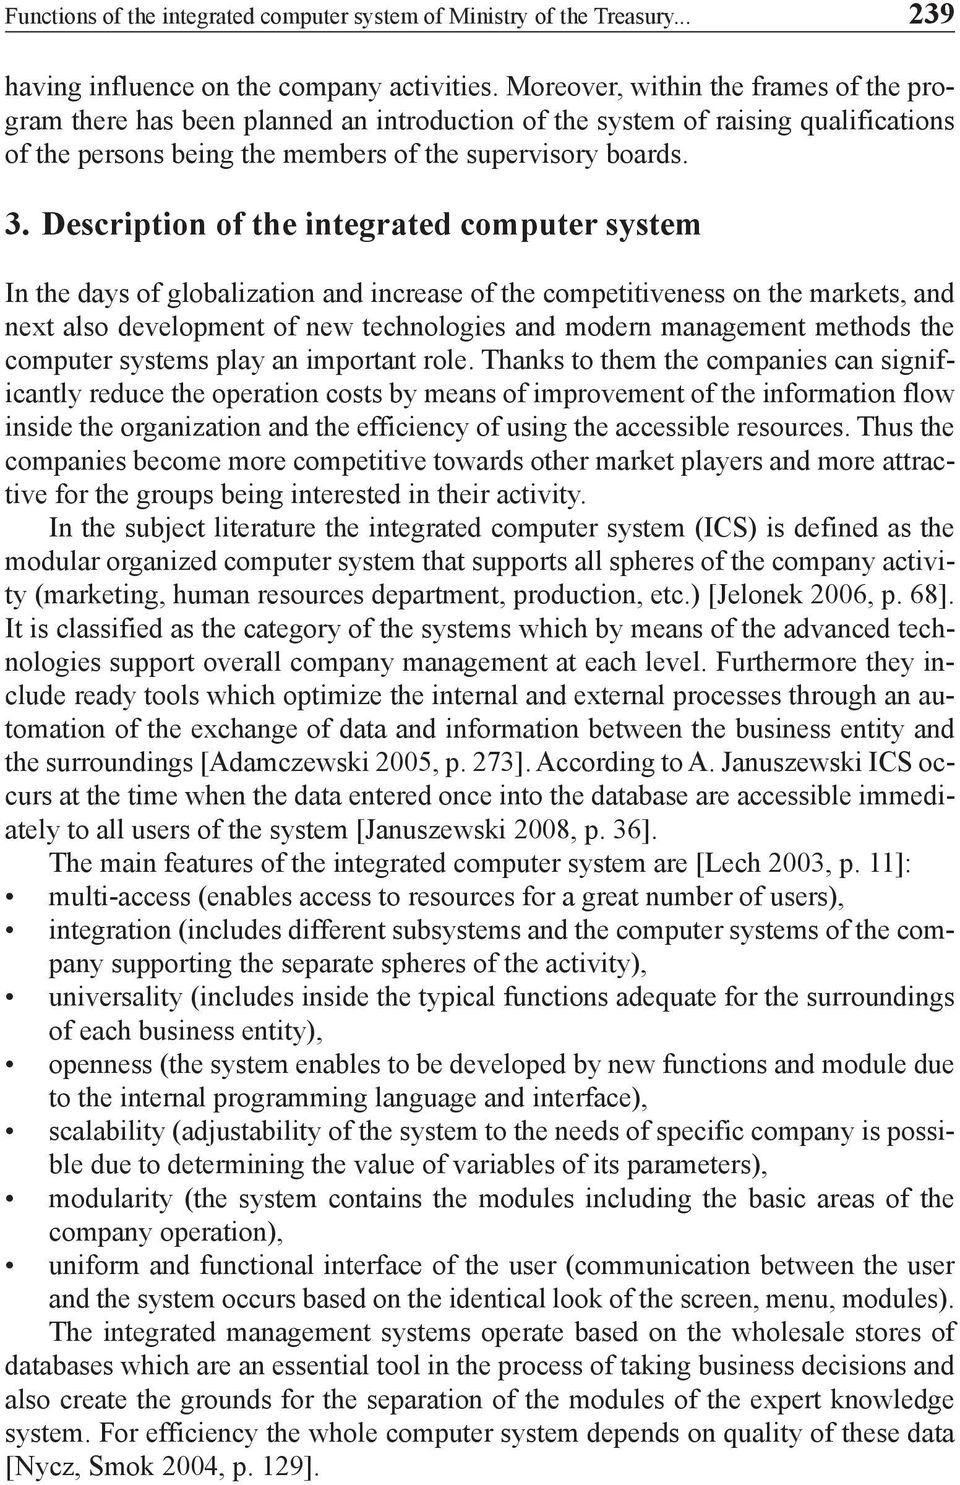 Description of the integrated computer system In the days of globalization and increase of the competitiveness on the markets, and next also development of new technologies and modern management